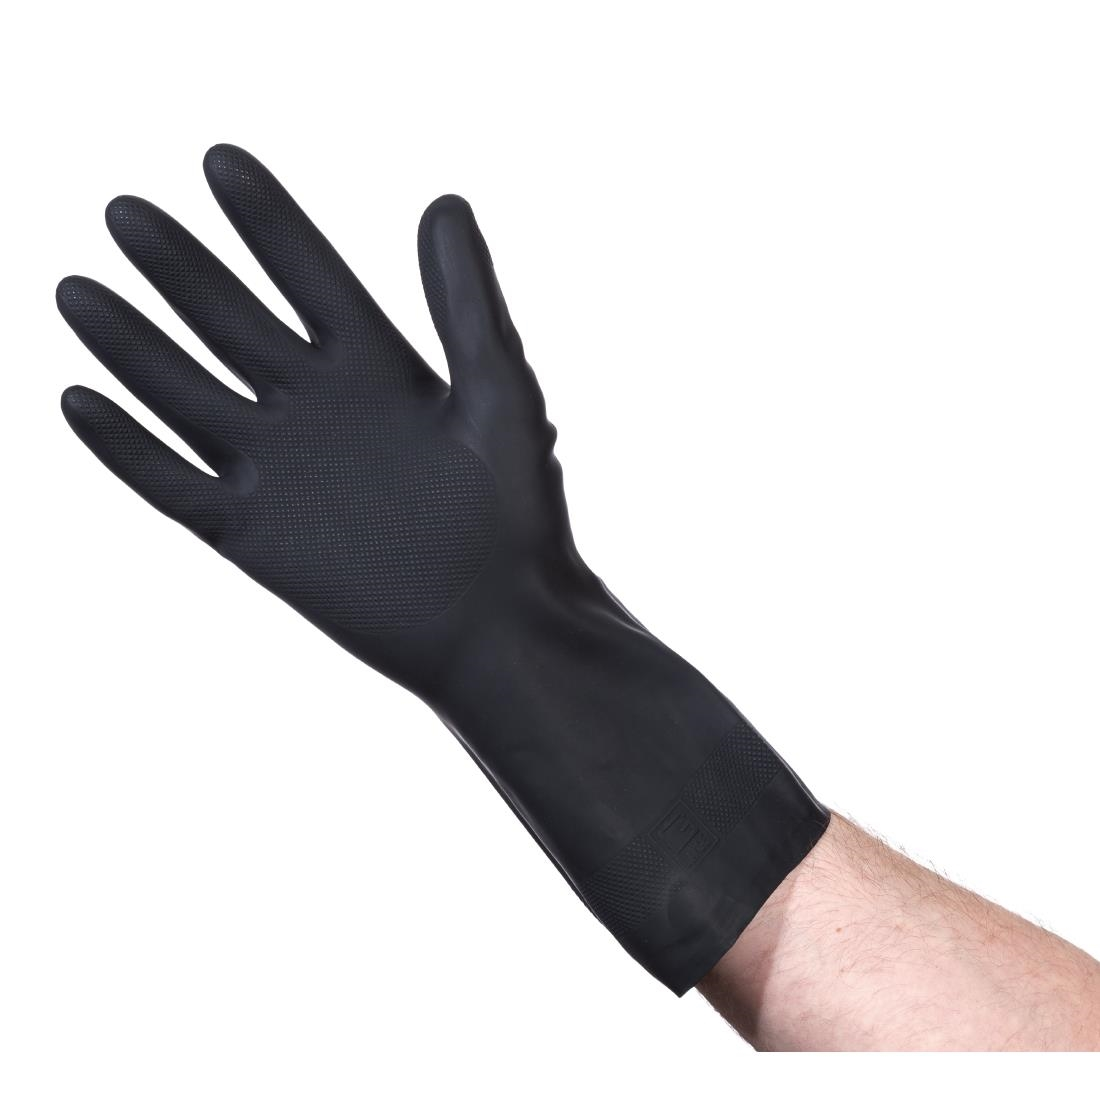 Image of MAPA Cleaning and Maintenance Glove L